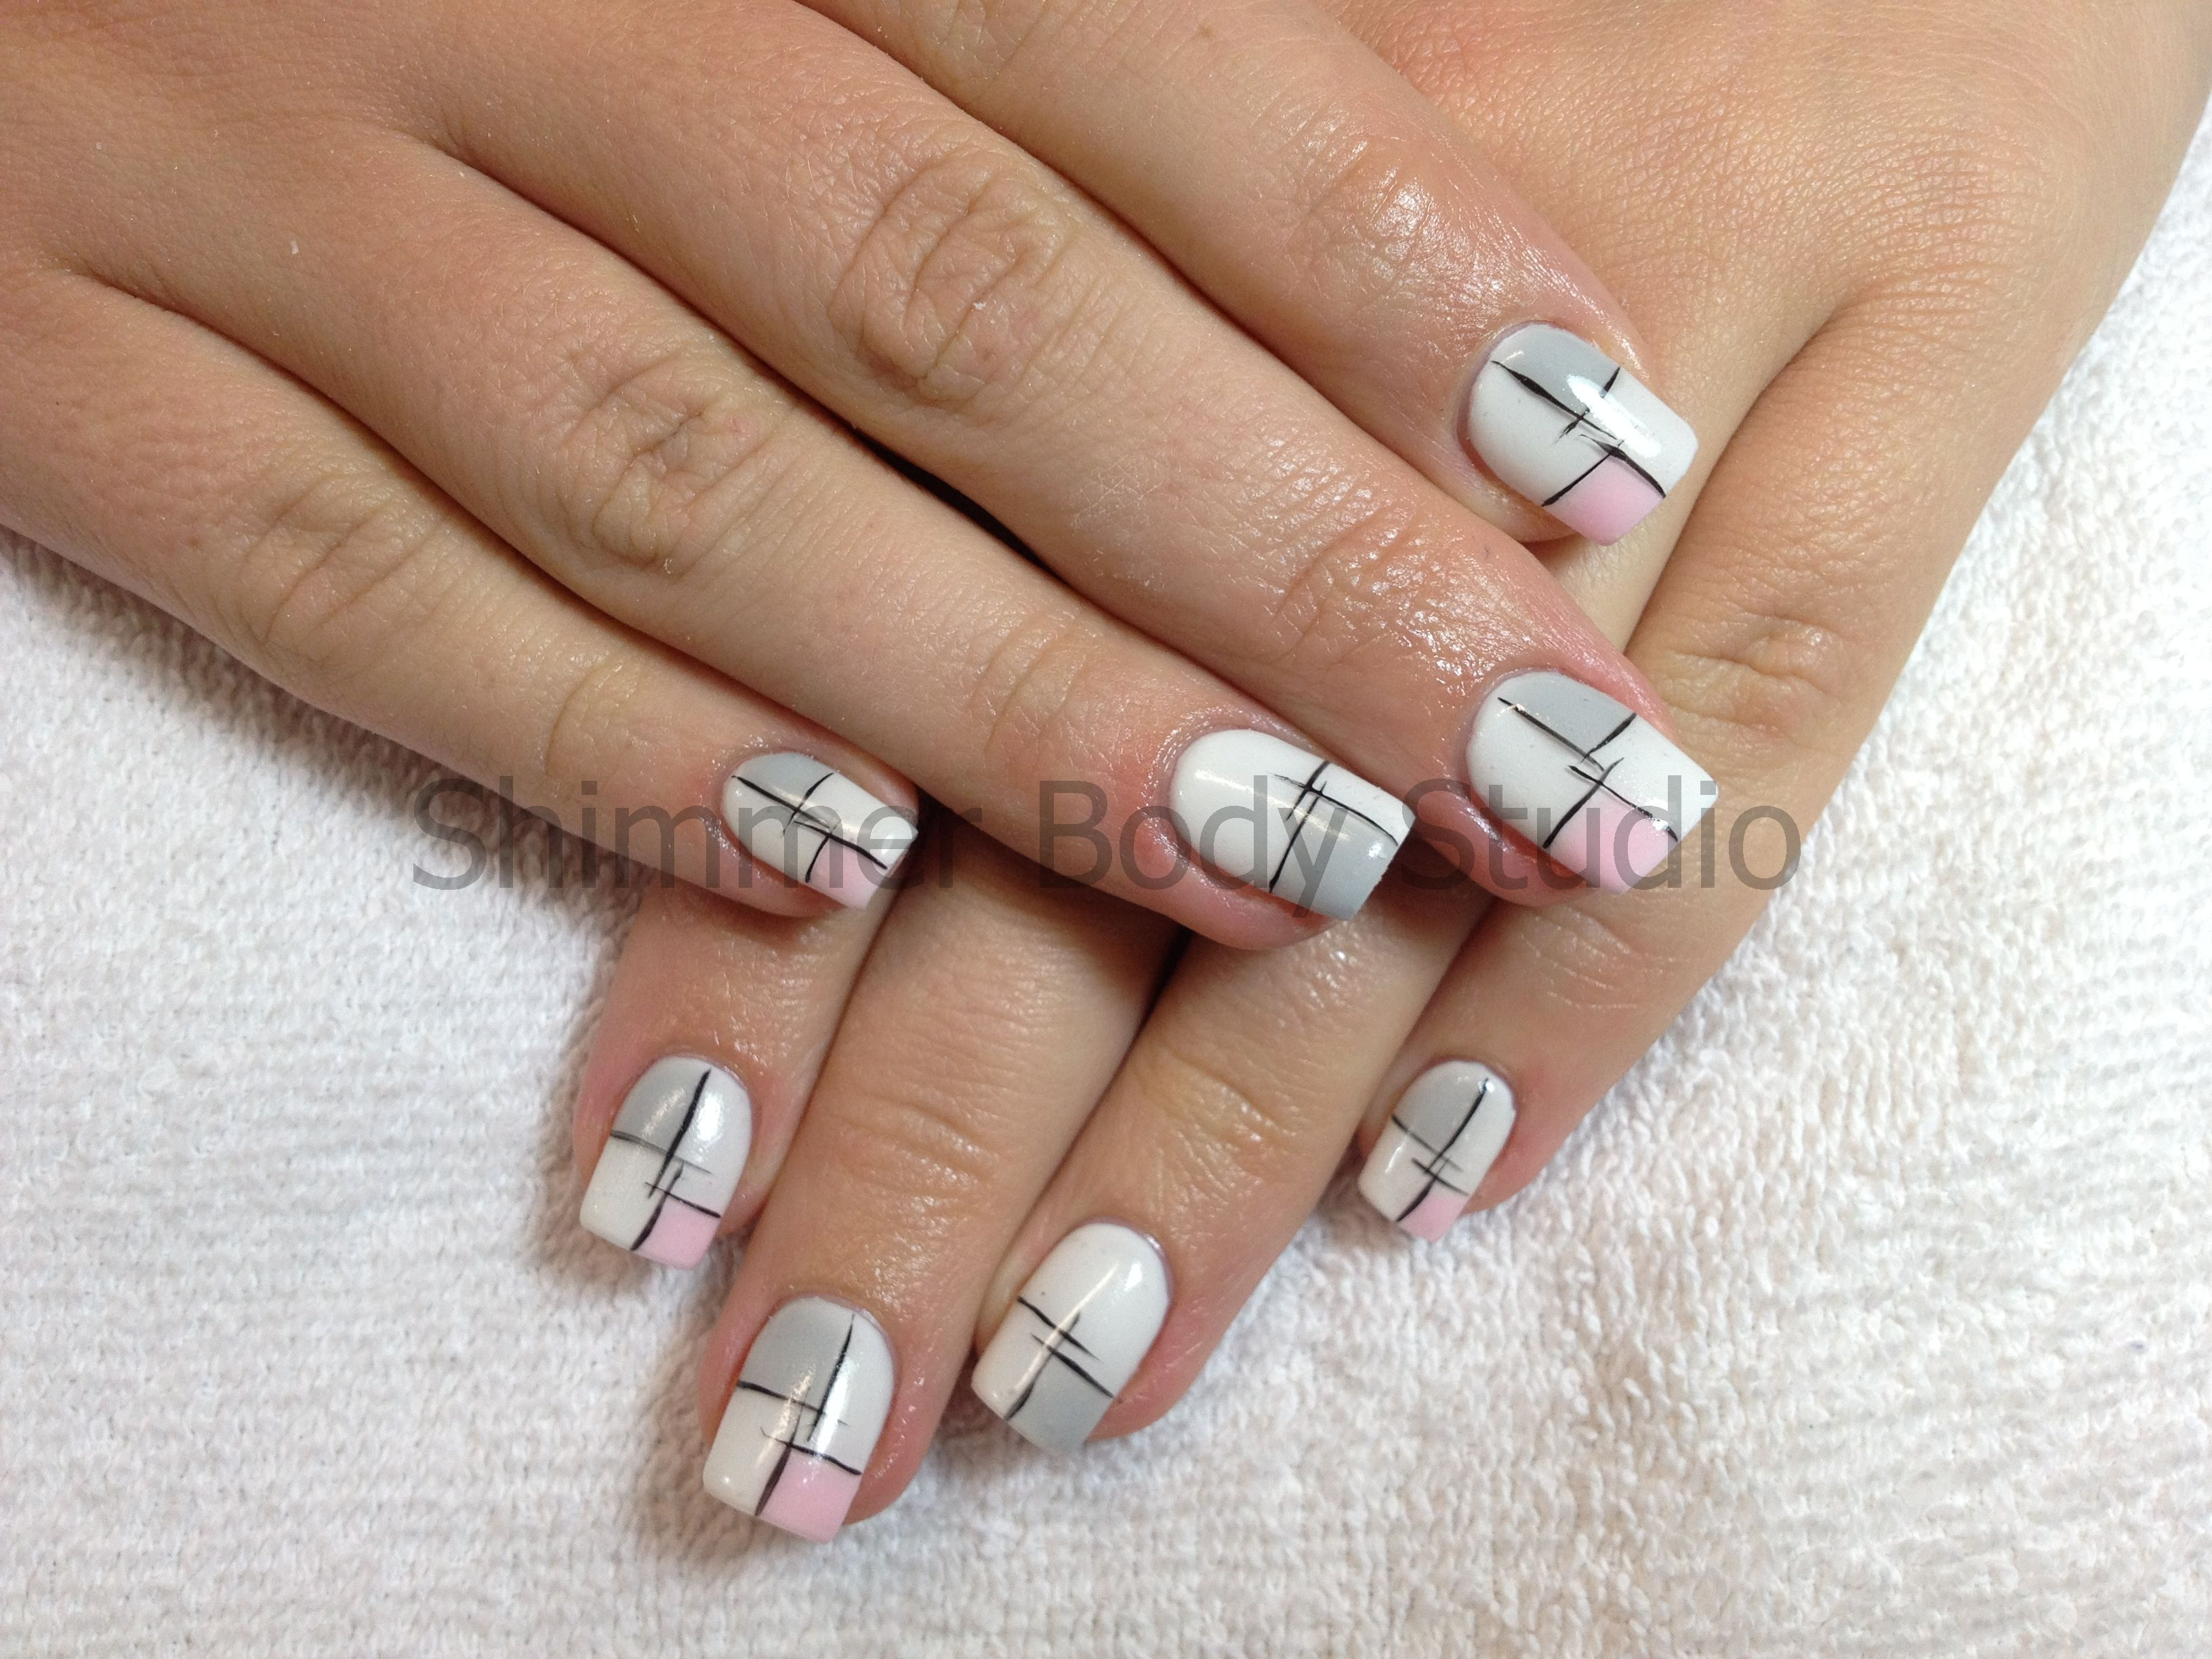 Gel Nails White Nails Hand Painted Nail Art Geometric Design Pastel Pink And Grey By Shimmer Body Studio Grey Nail Designs Painted Nail Art Nail Art